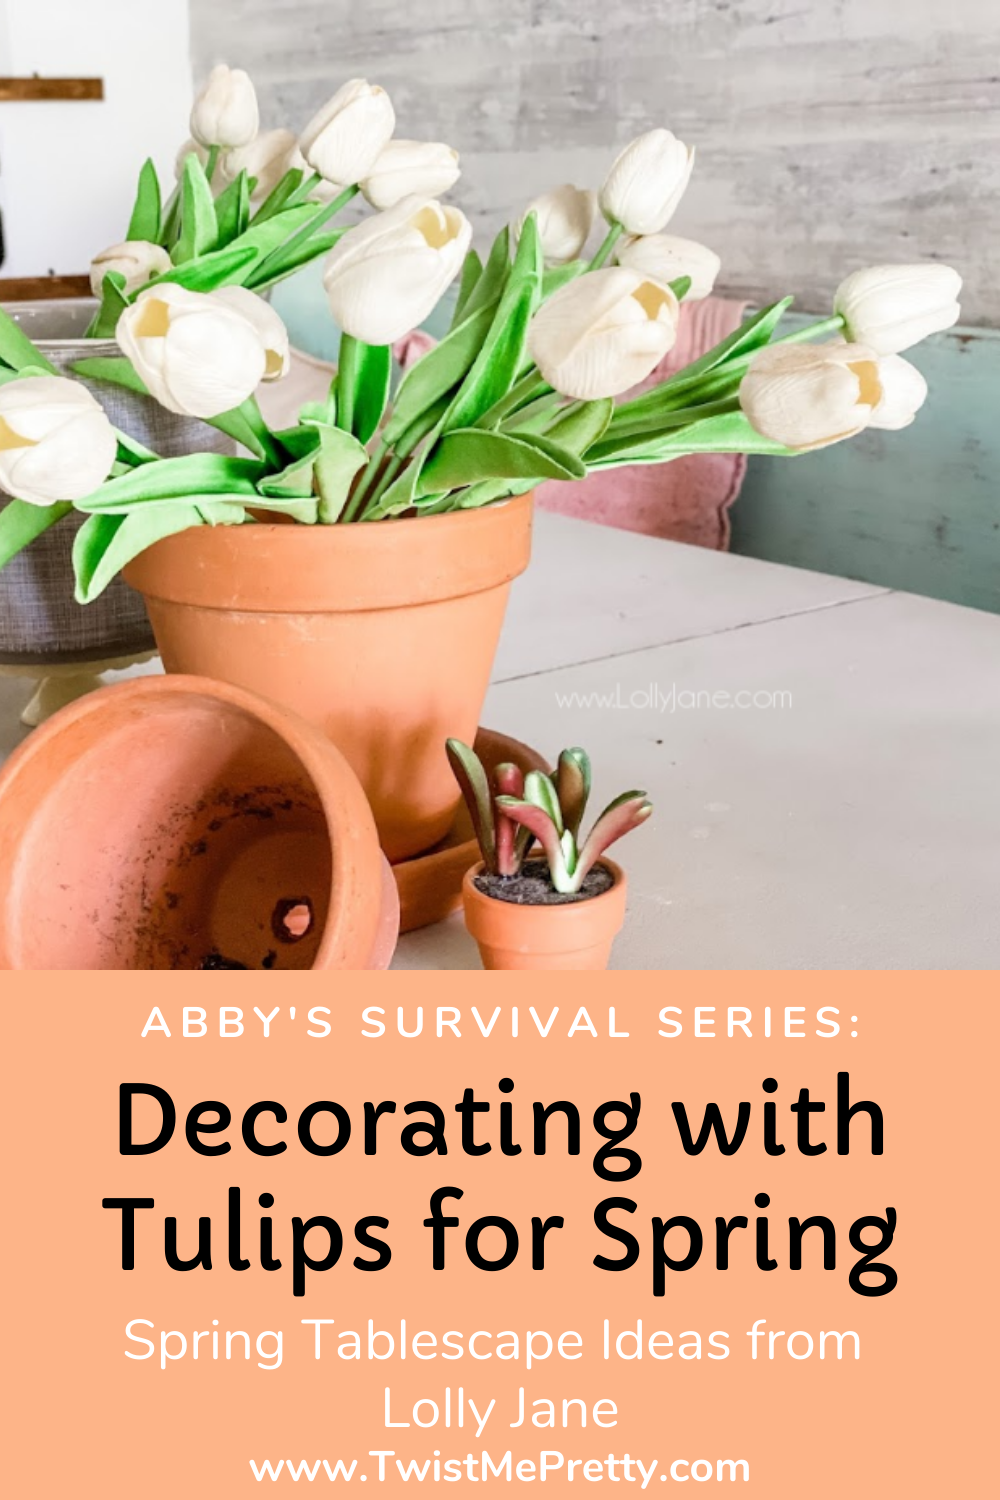 Abby's Survival Series: Decorating with Tulips for Spring www.TwistMePretty.com